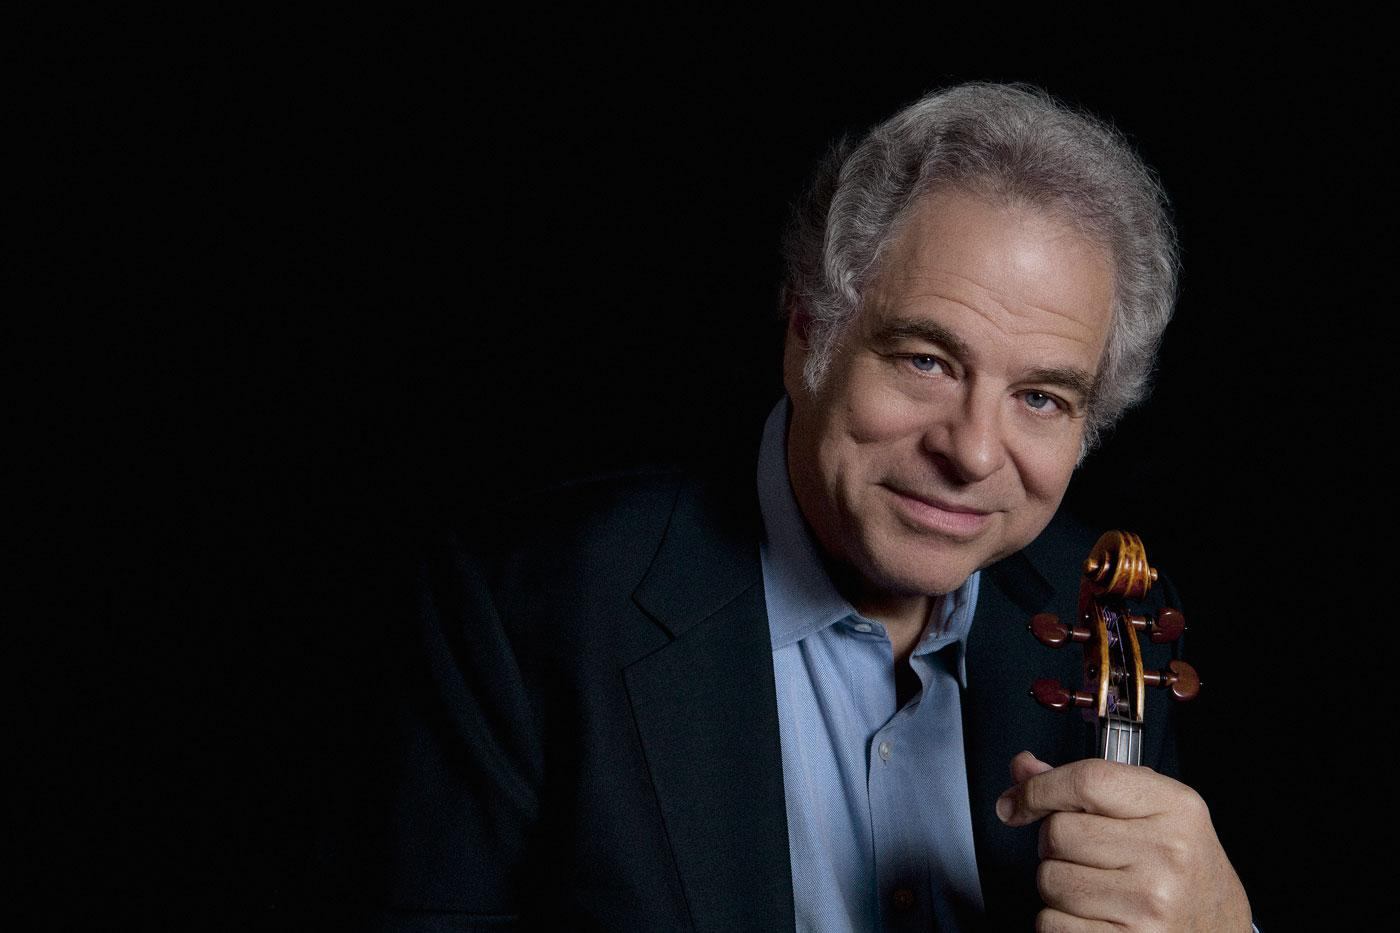 The violinist Itzhak Perlman. (Photo credit: Lisa Marie Mazzucco)